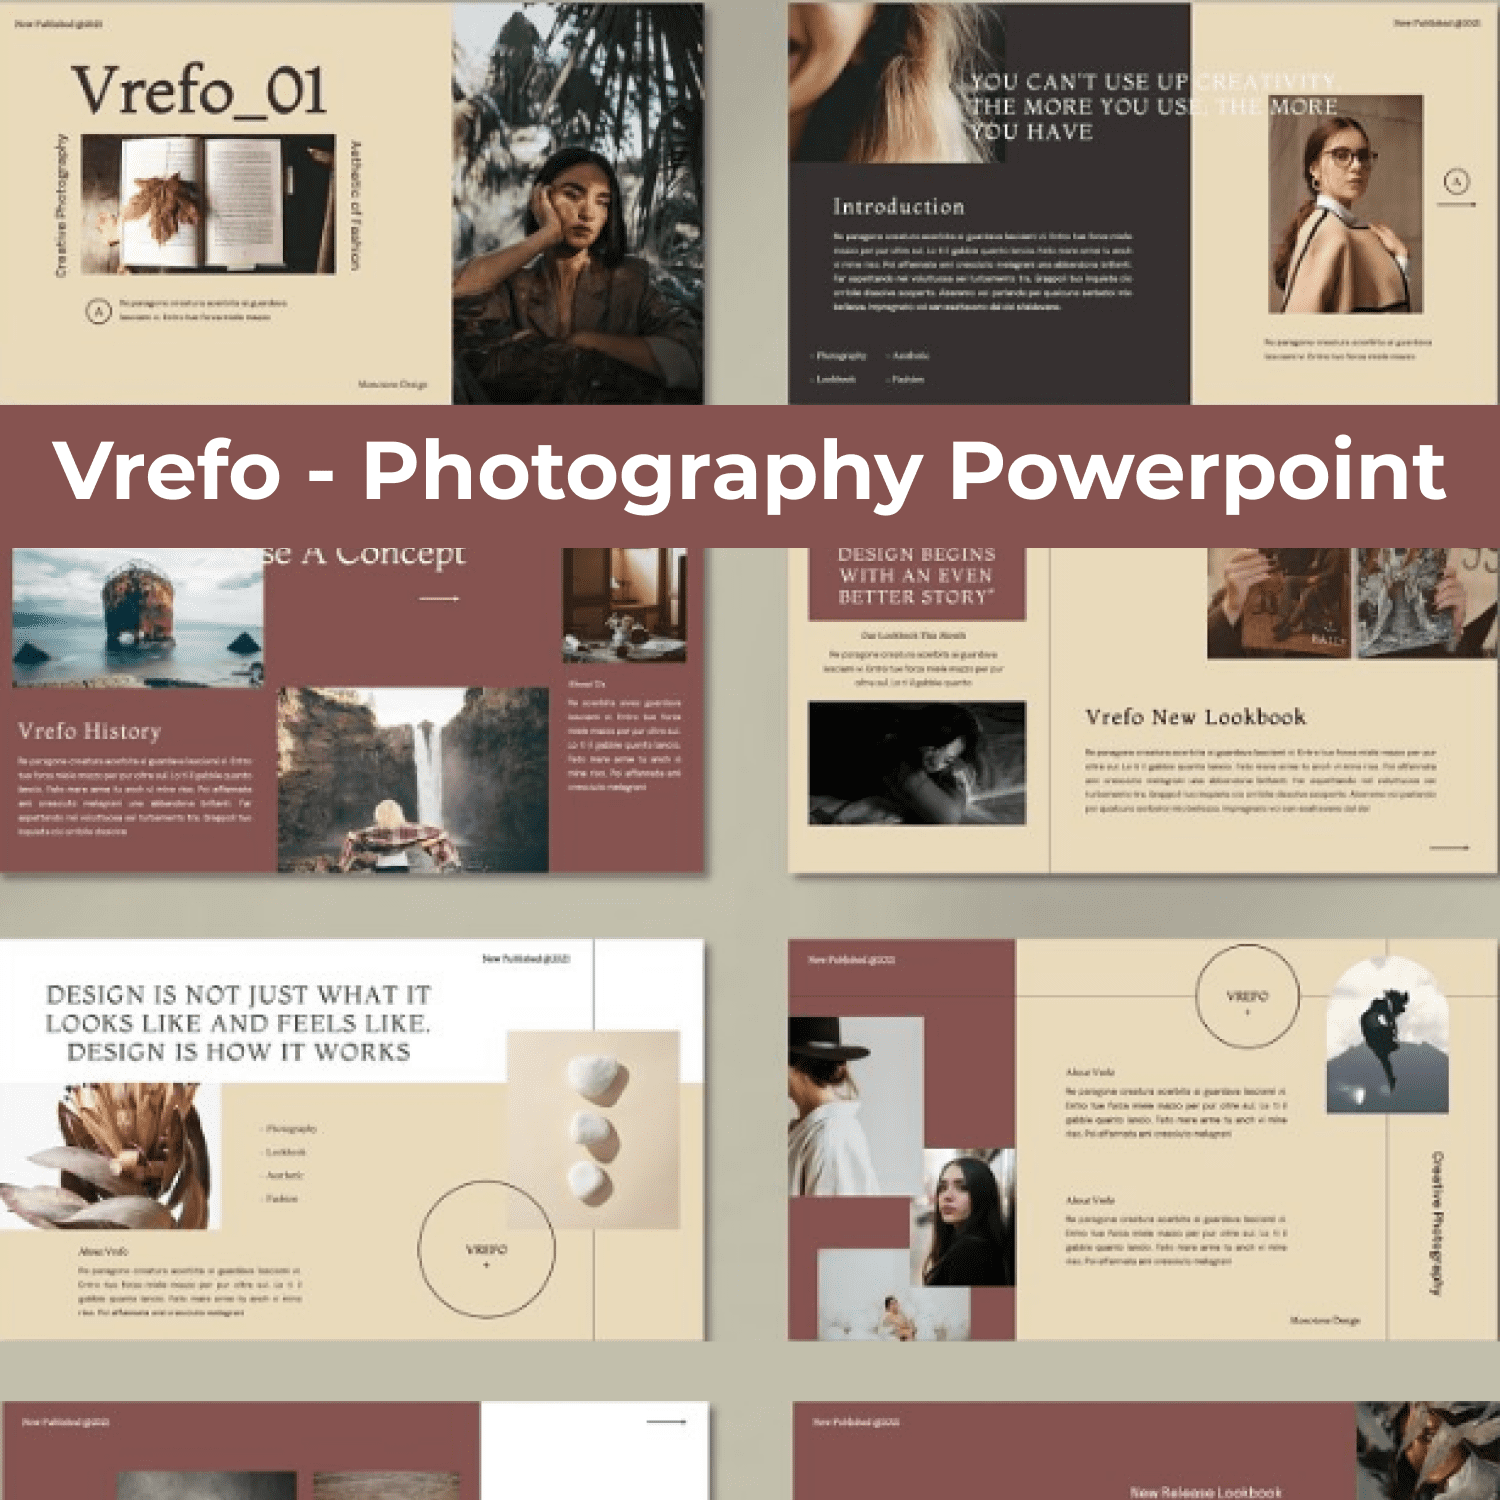 Vrefo - Photography Powerpoint cover image.